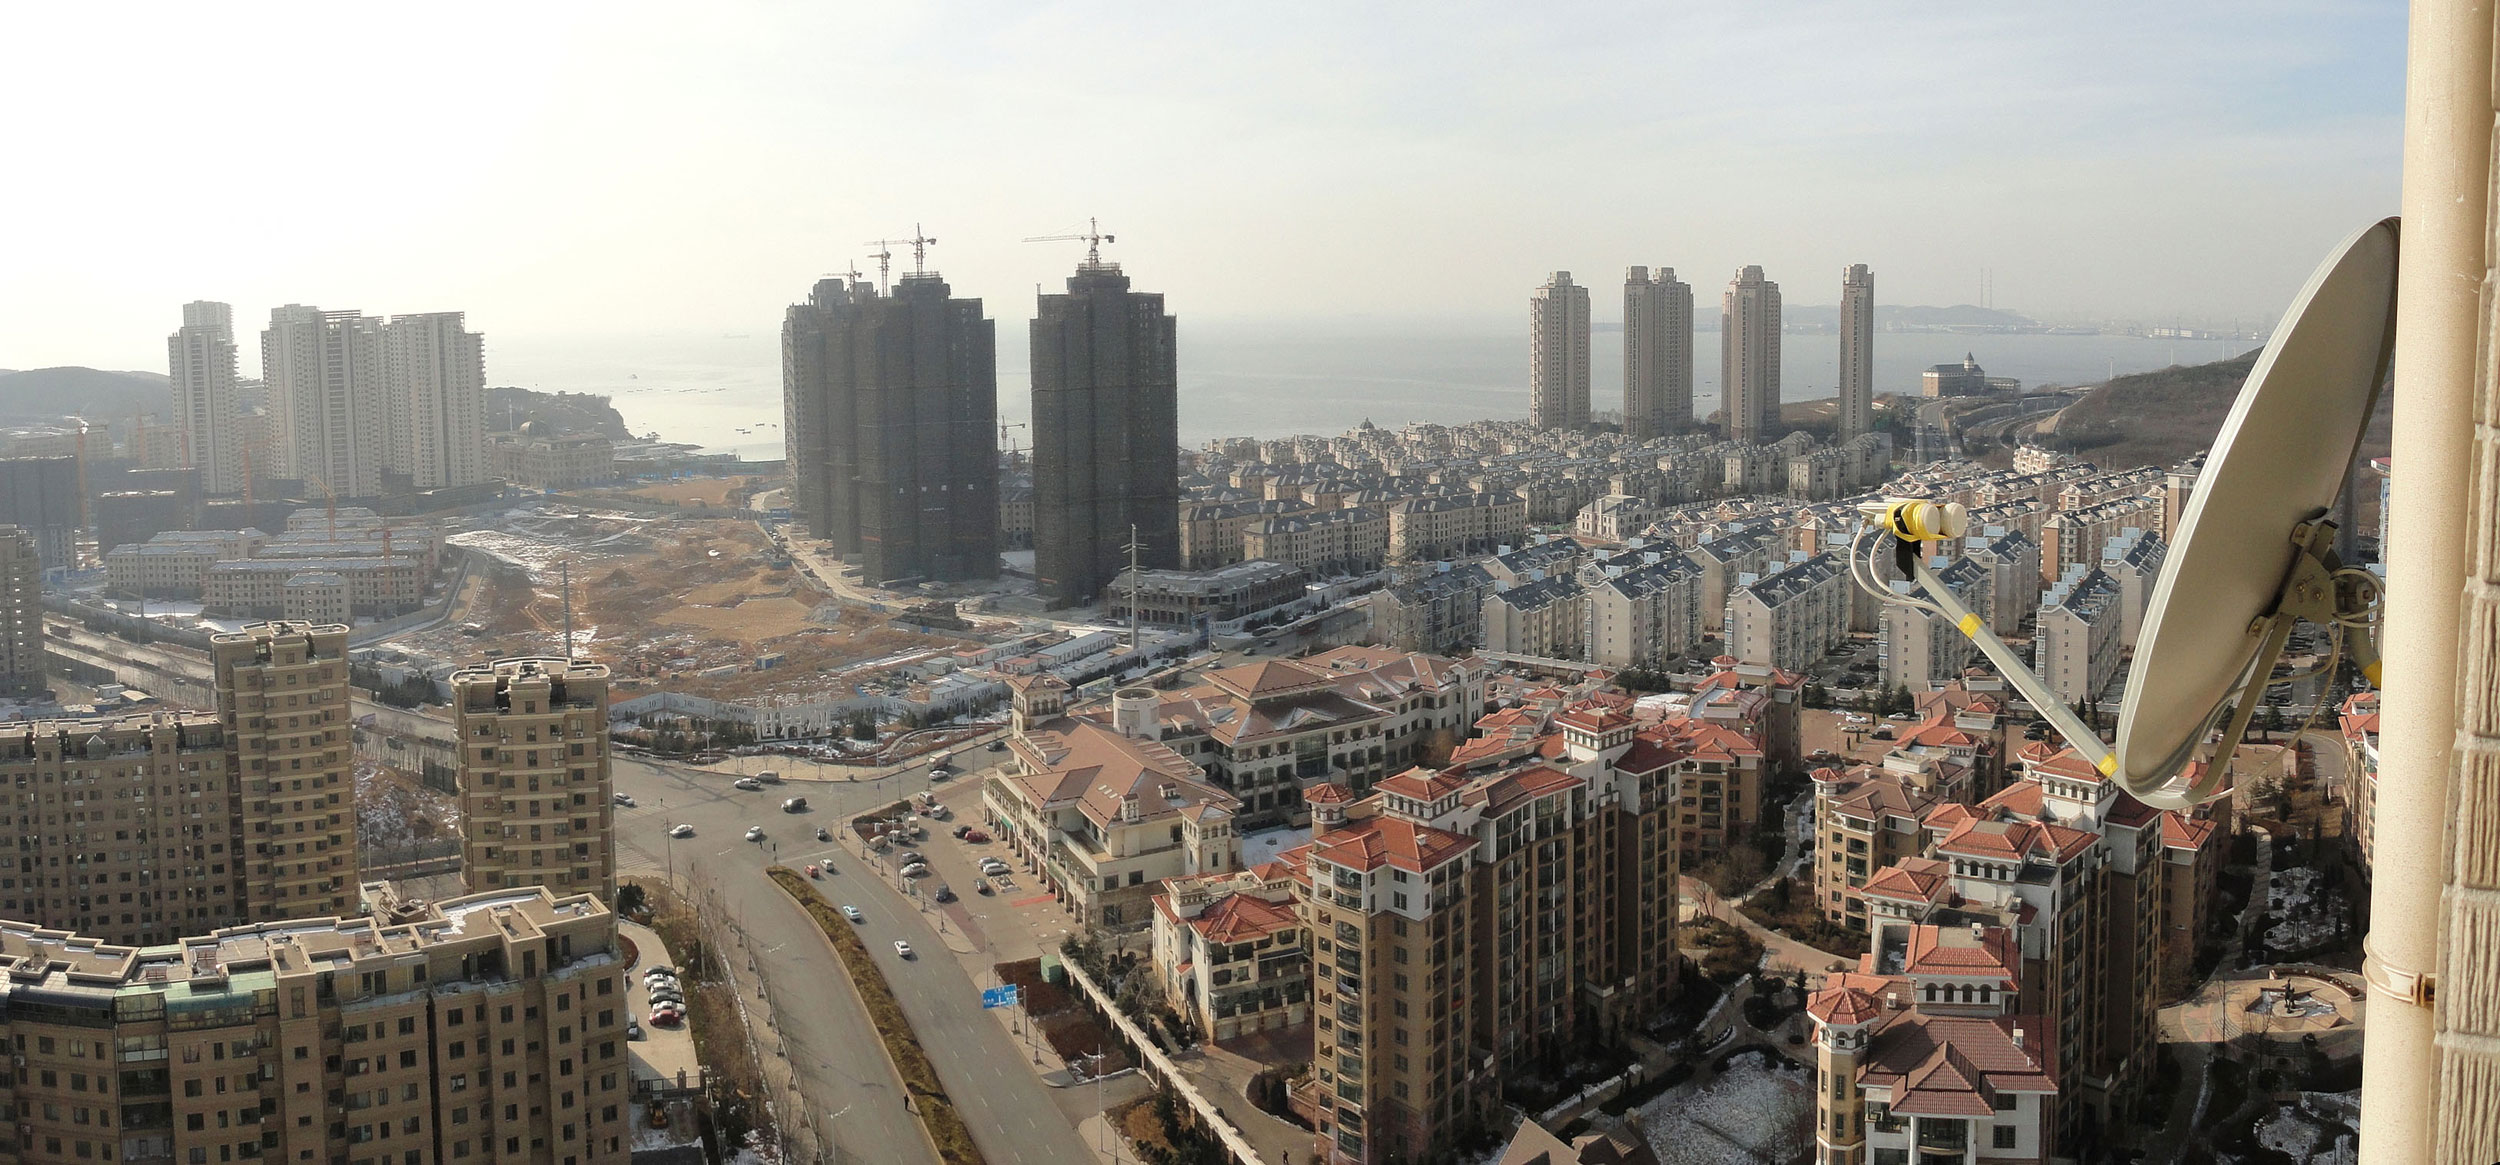 Dalian-New-Devl-housing-projects-1